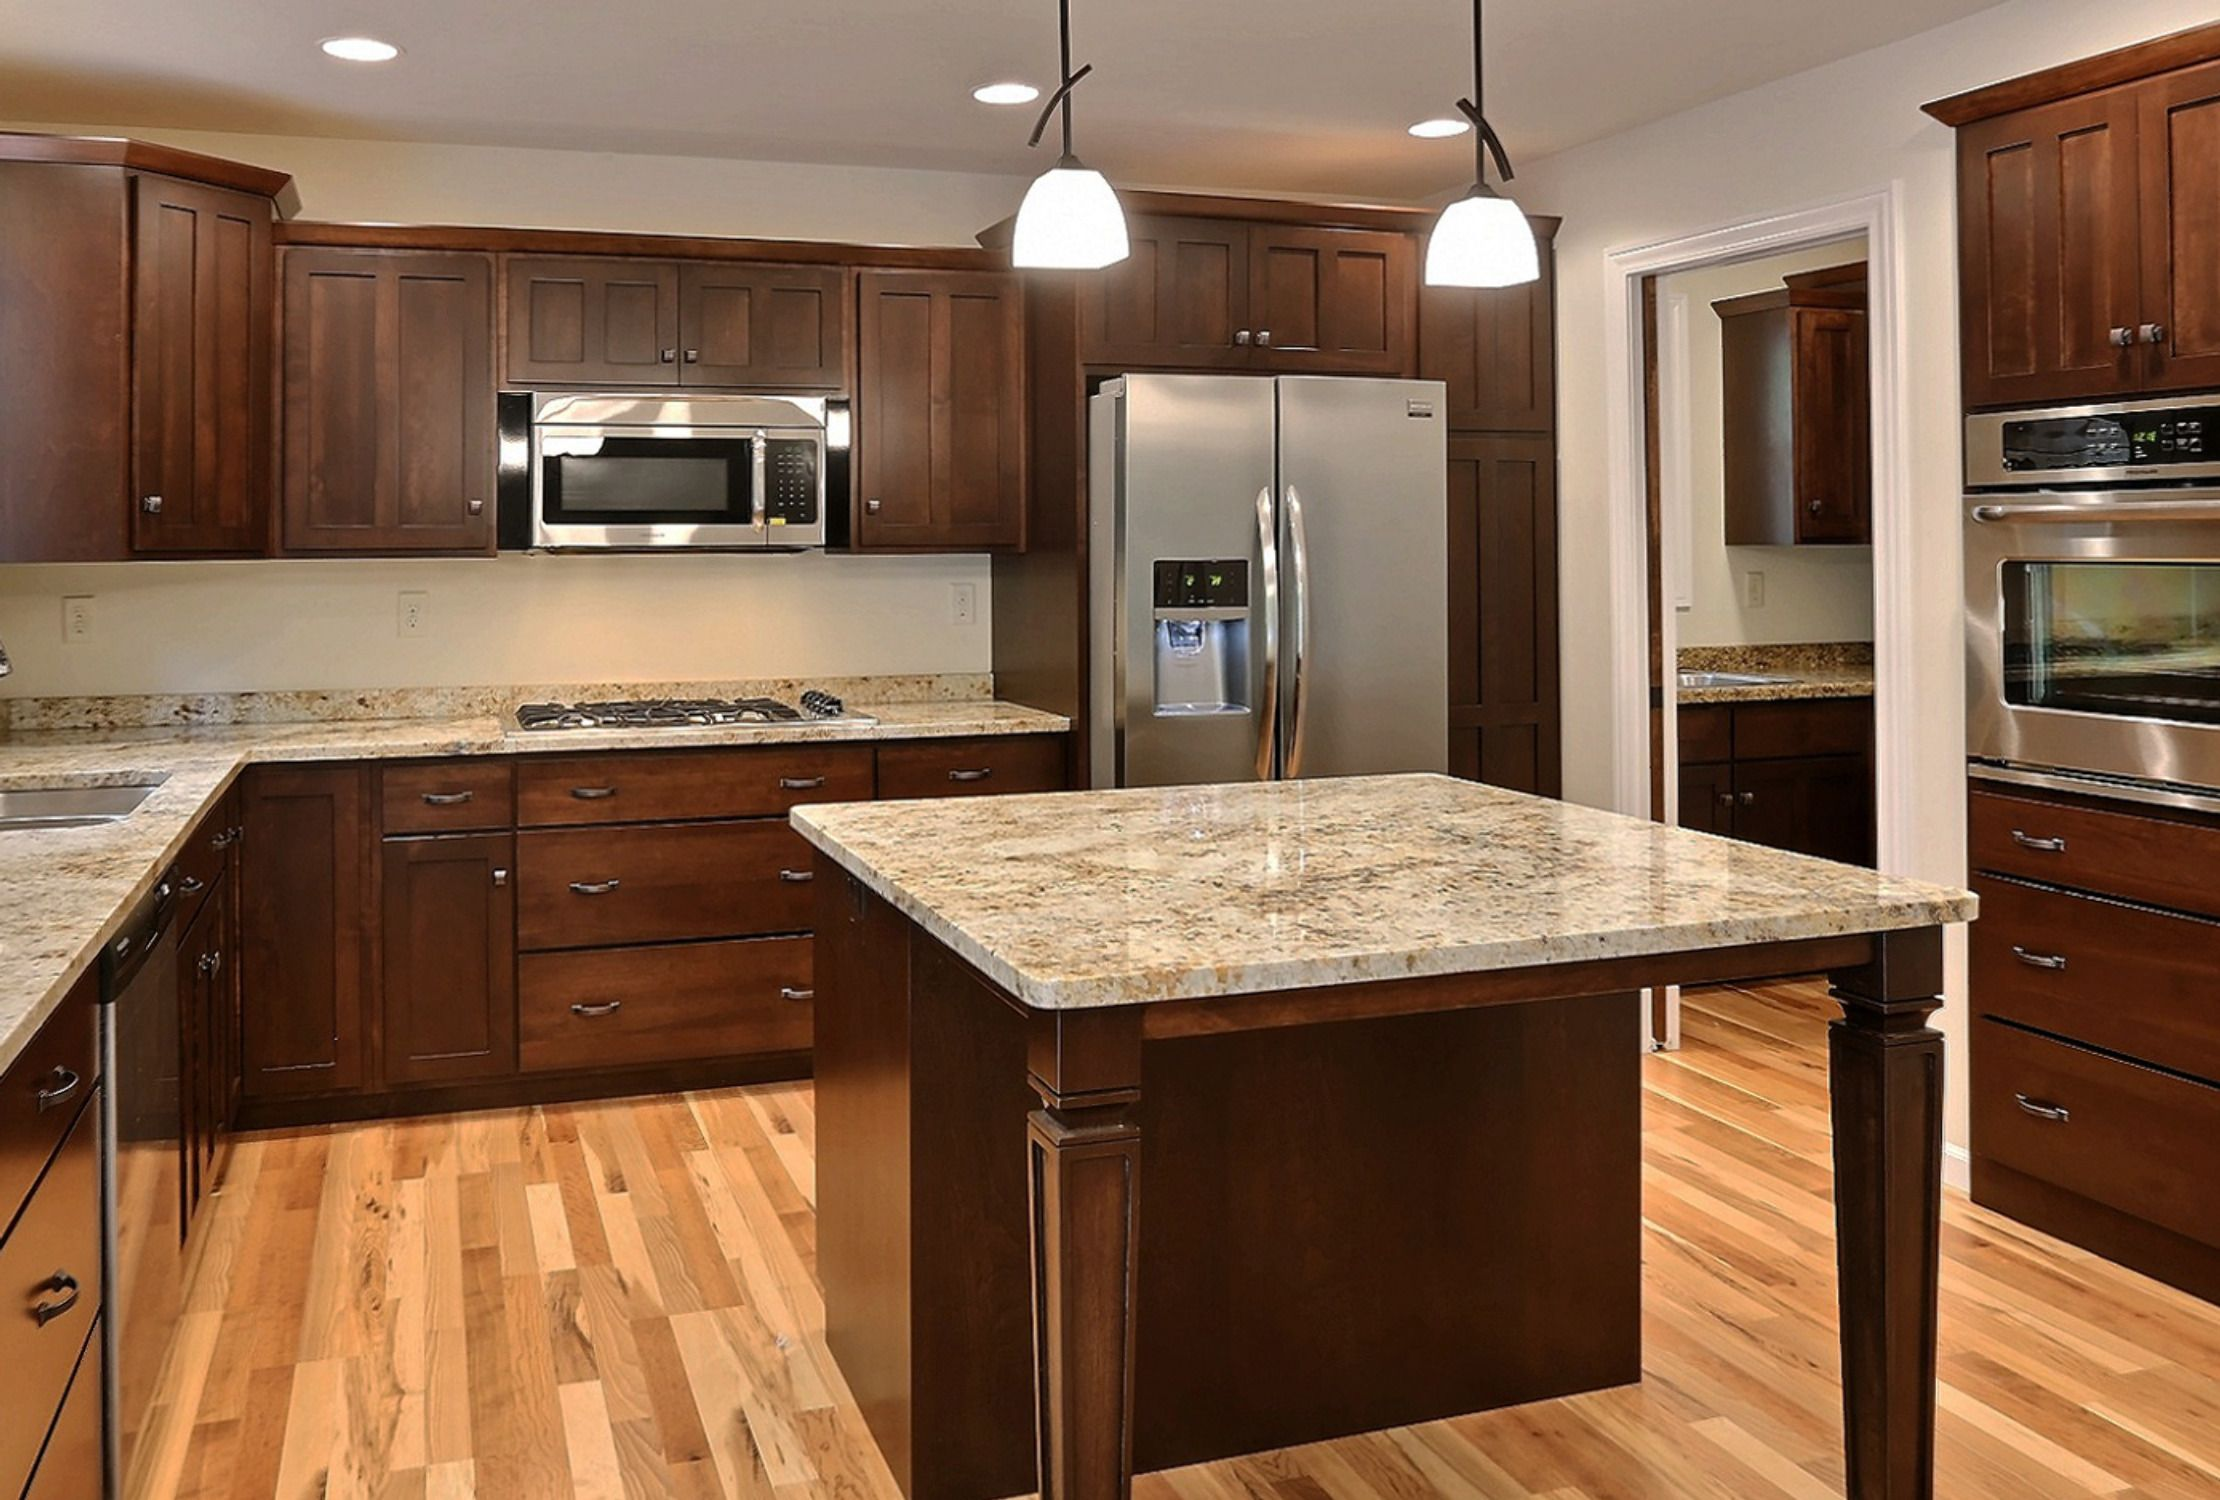 Colonial Cream Granite Kitchen Lr12 Azalea Floor Plan Mission Two Panel Style Cabinets In